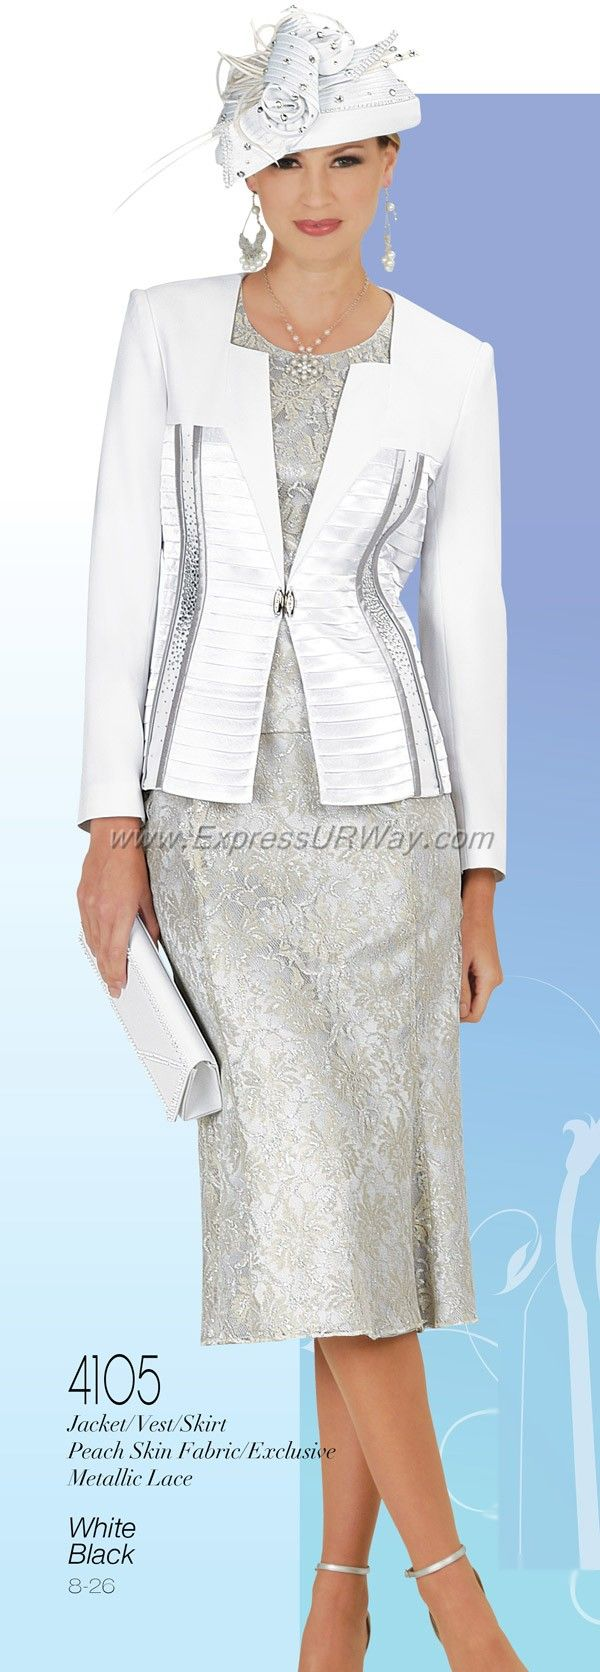 Womens Church Suits by Champagne for Spring 2014 - www.ExpressURWay.com…